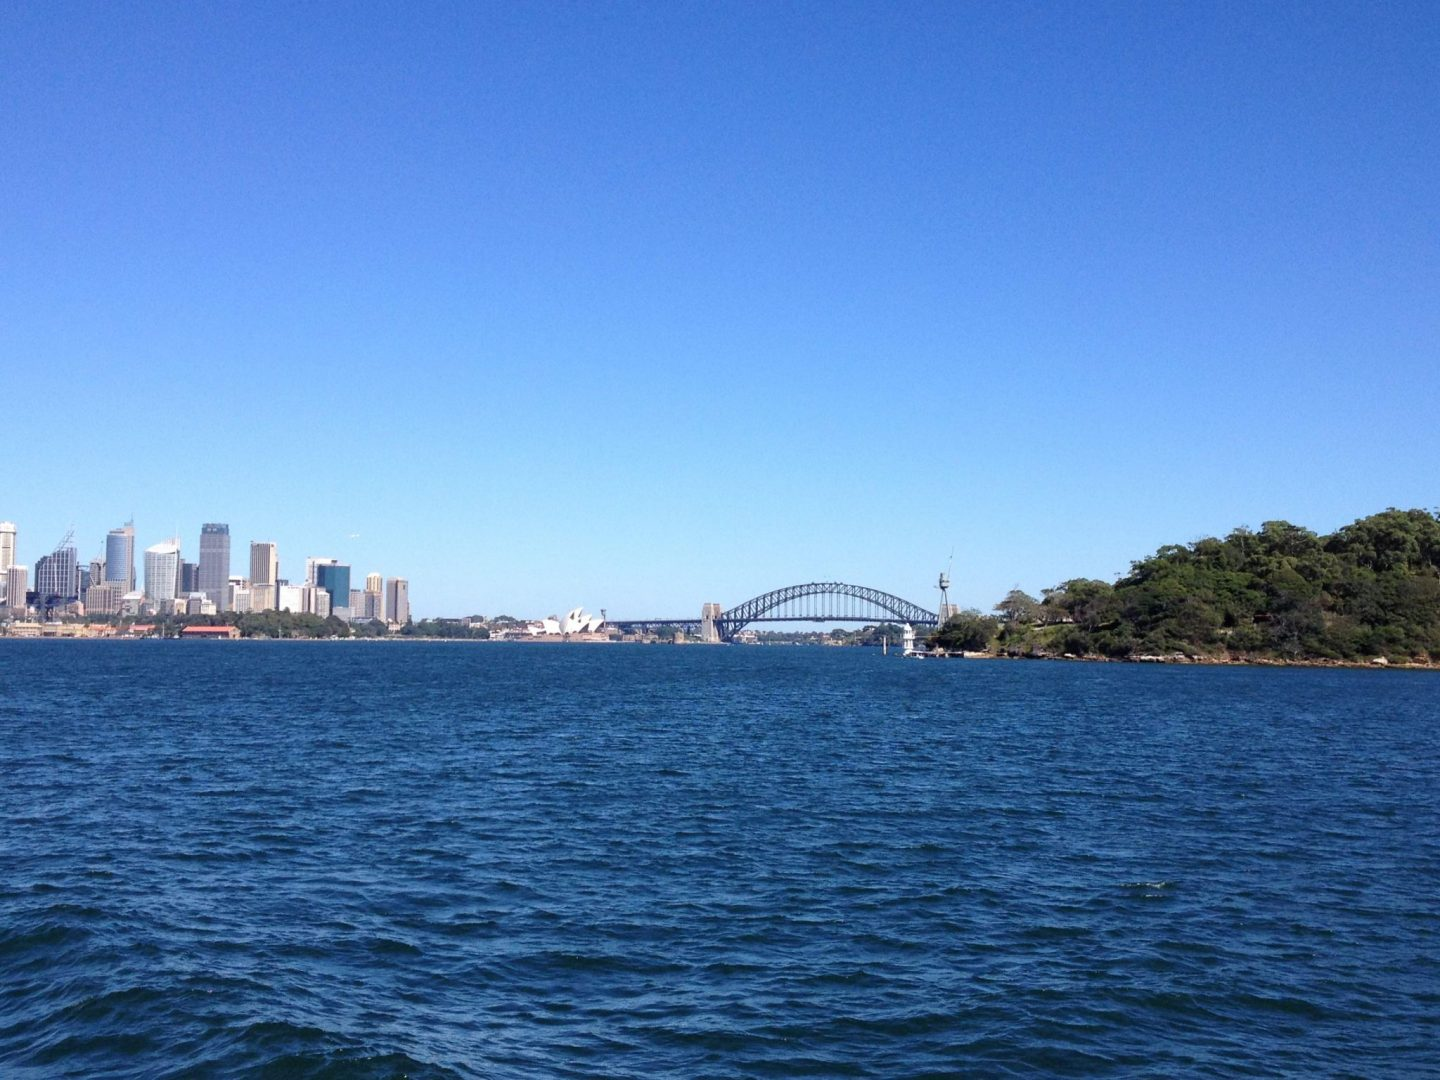 Sydney Harbour Bridge from the ferry